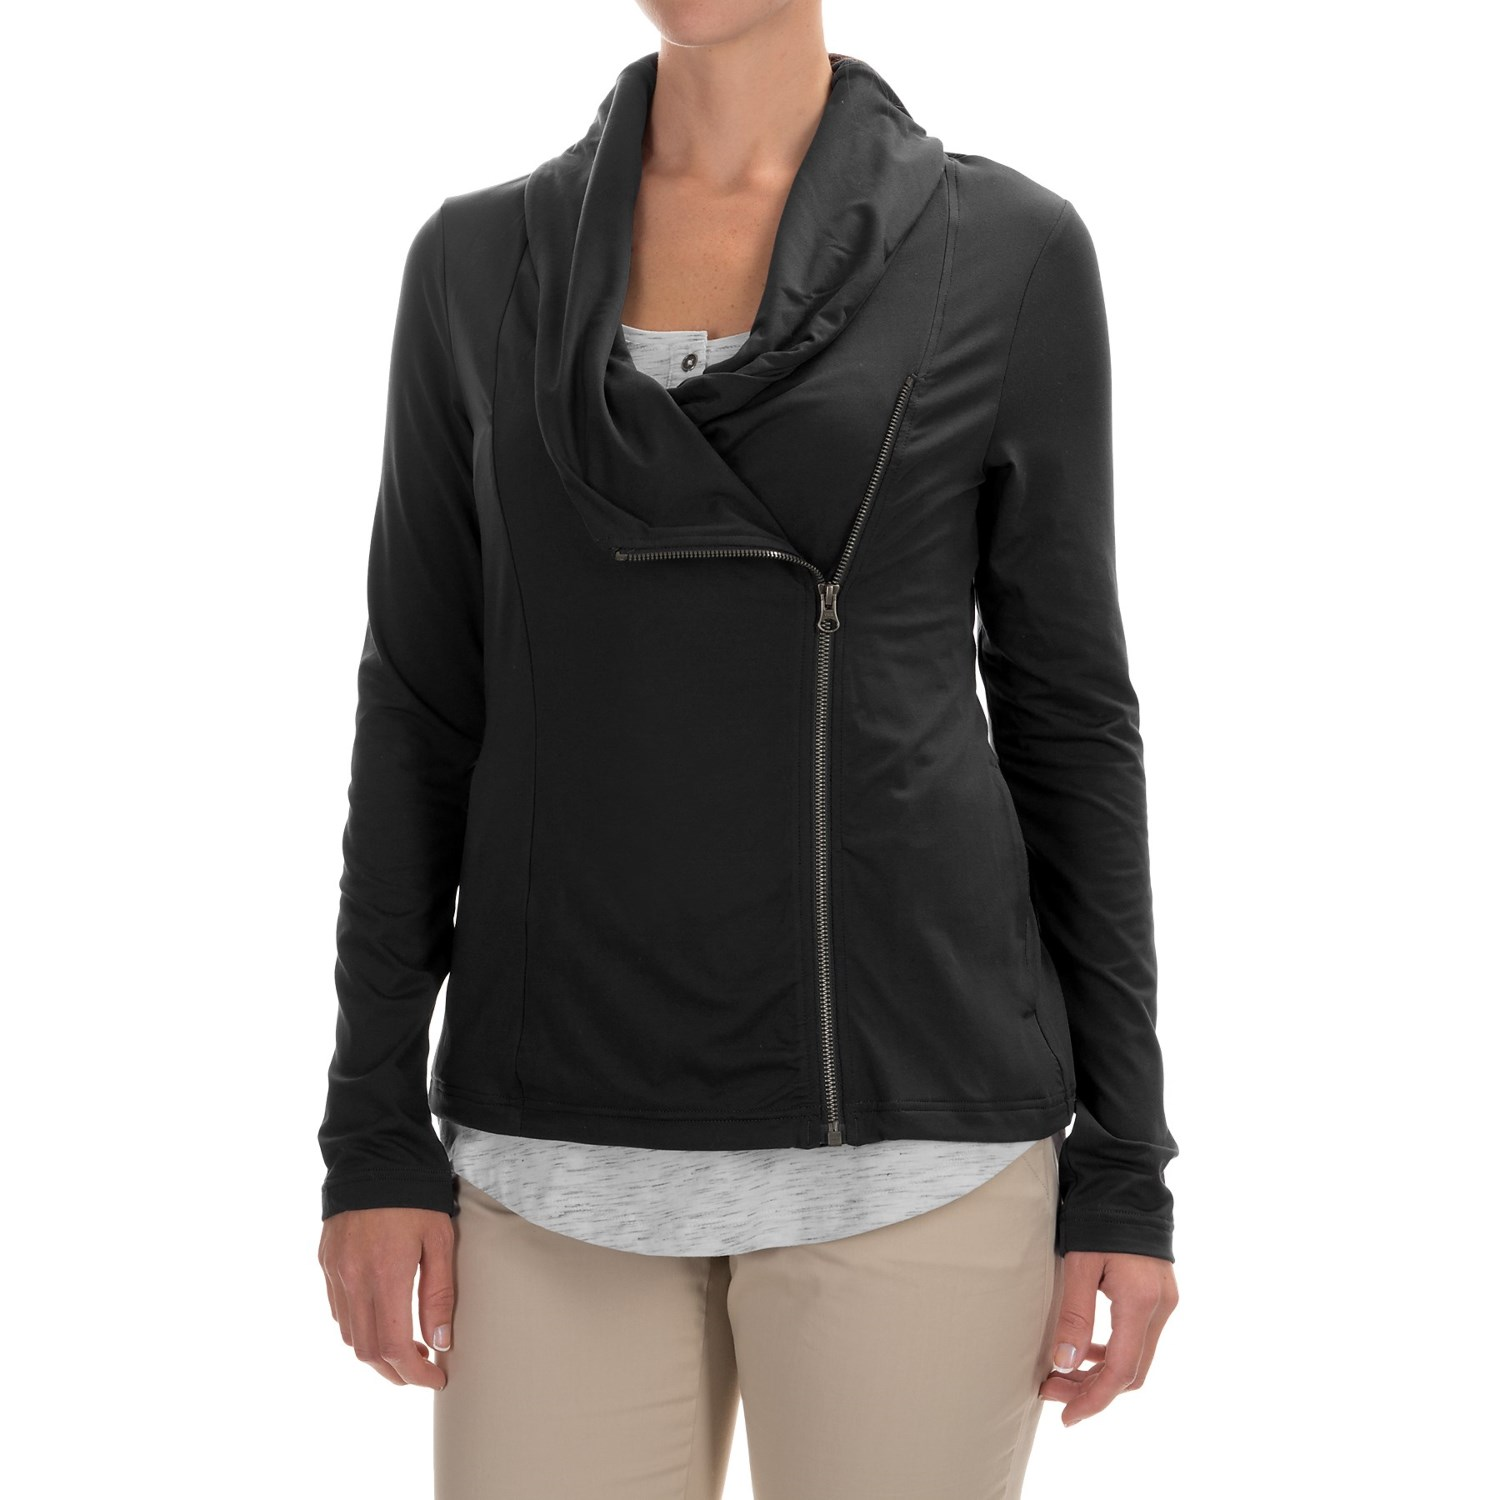 Casual womens jacket